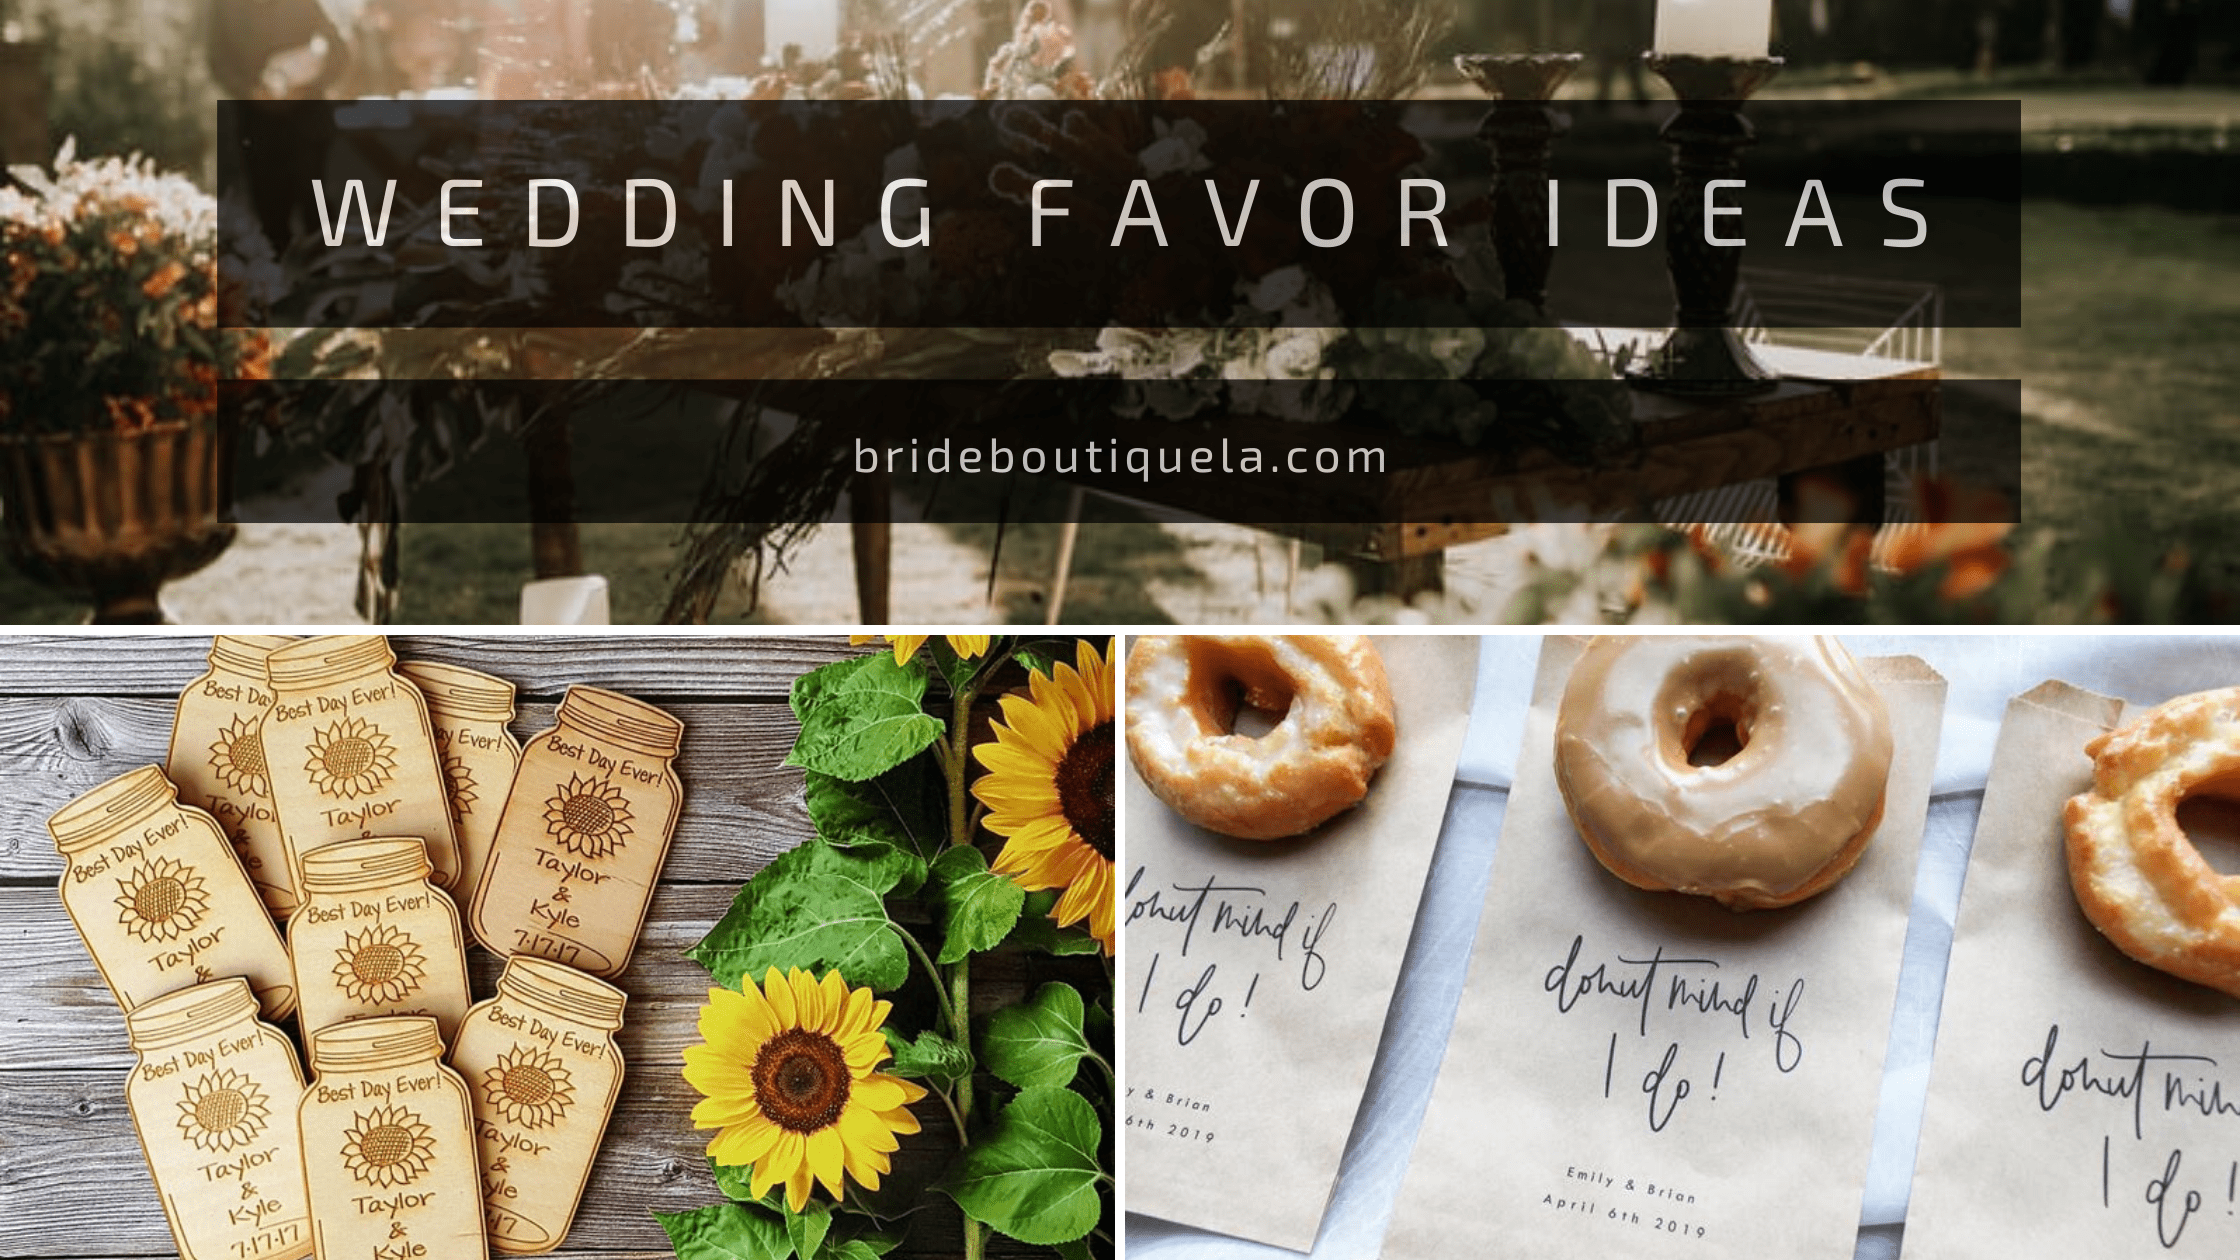 40+ Stunning Wedding Favor Ideas To Wow Your Guests